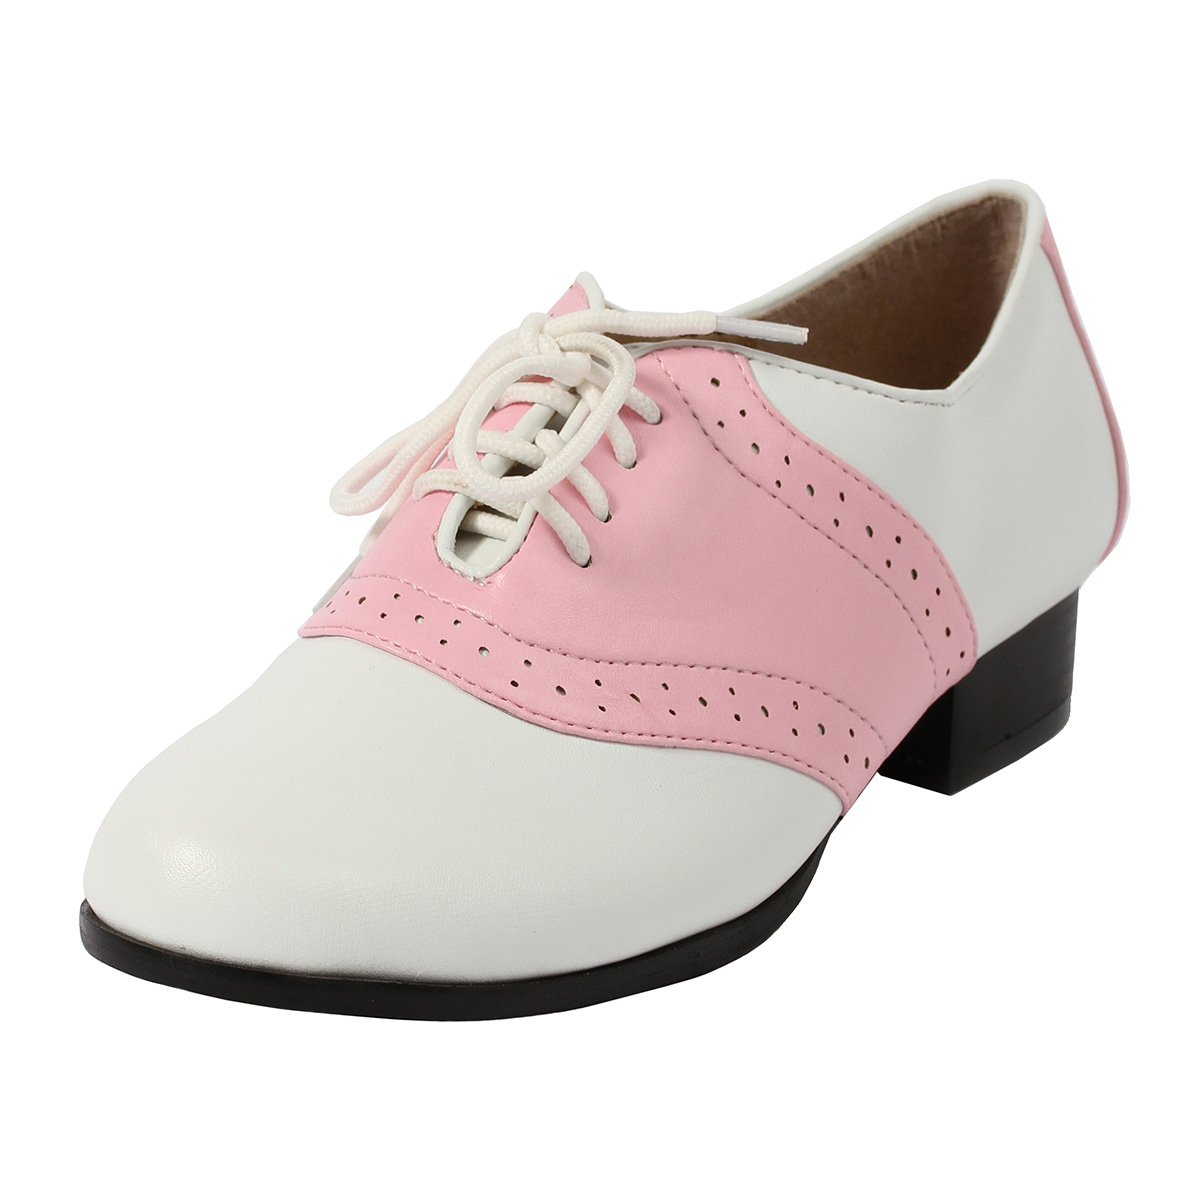 Women's Oxford Saddle Shoes Lace up Front with Low Heel Two Tone Pink White Size: 8 by Summitfashions